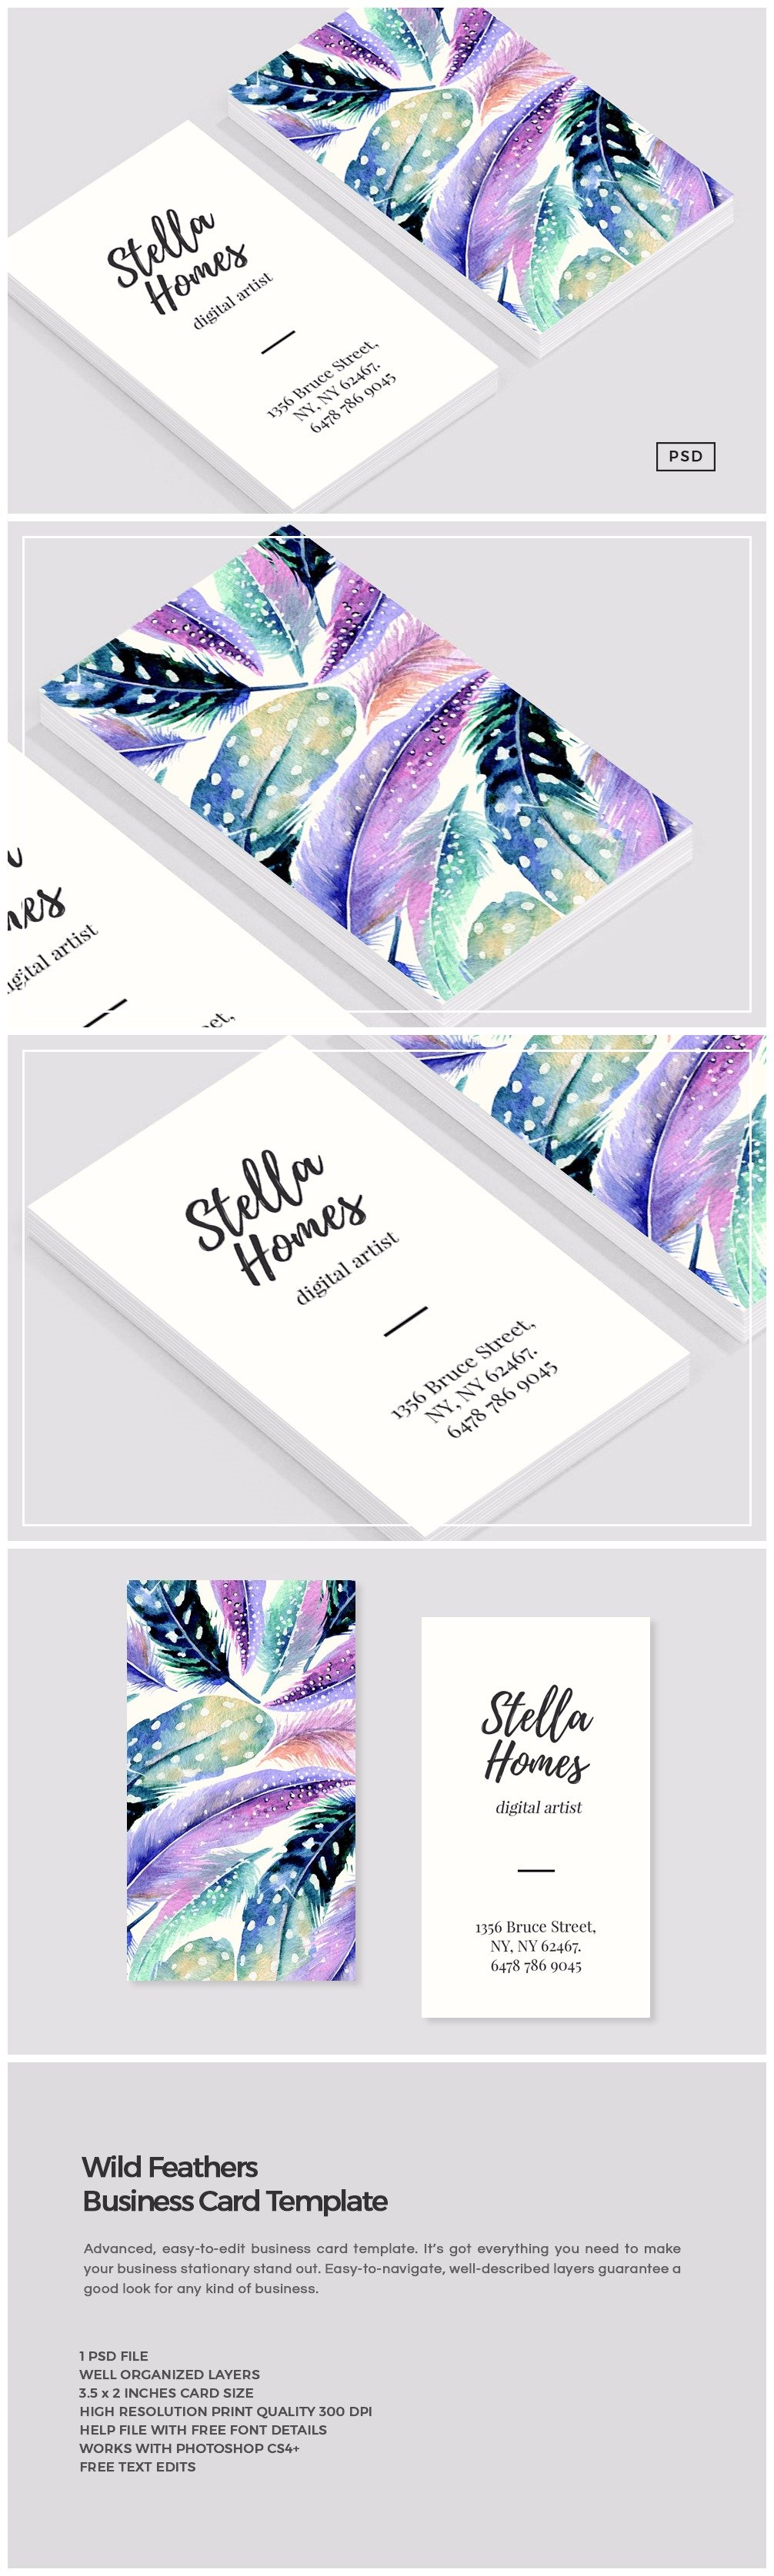 Wild feathers business card template business card templates wild feathers business card template business card templates creative market wajeb Gallery